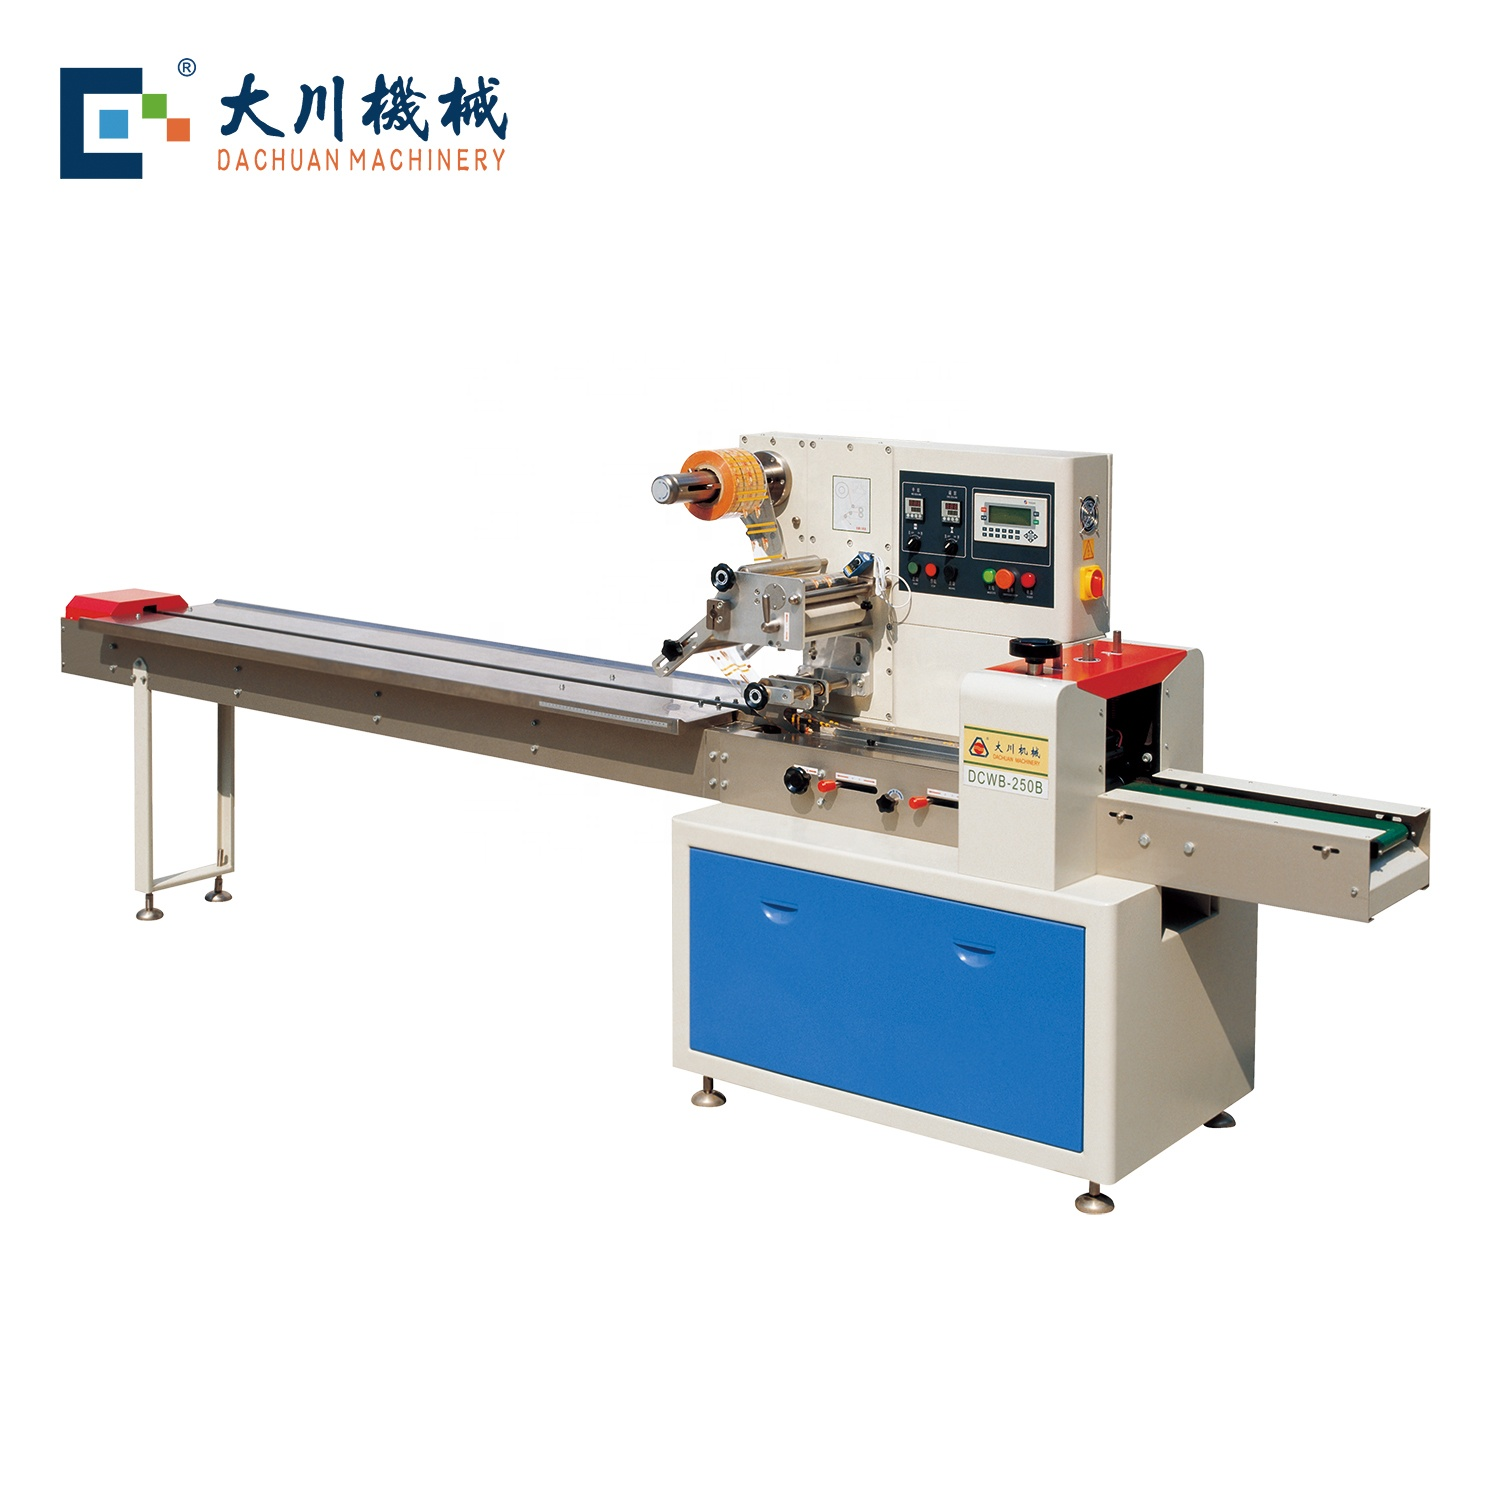 rotary pillow packing machine dcwb 250b d s for biscuit buy packing machine cake packing machine candy packing machine product on alibaba com